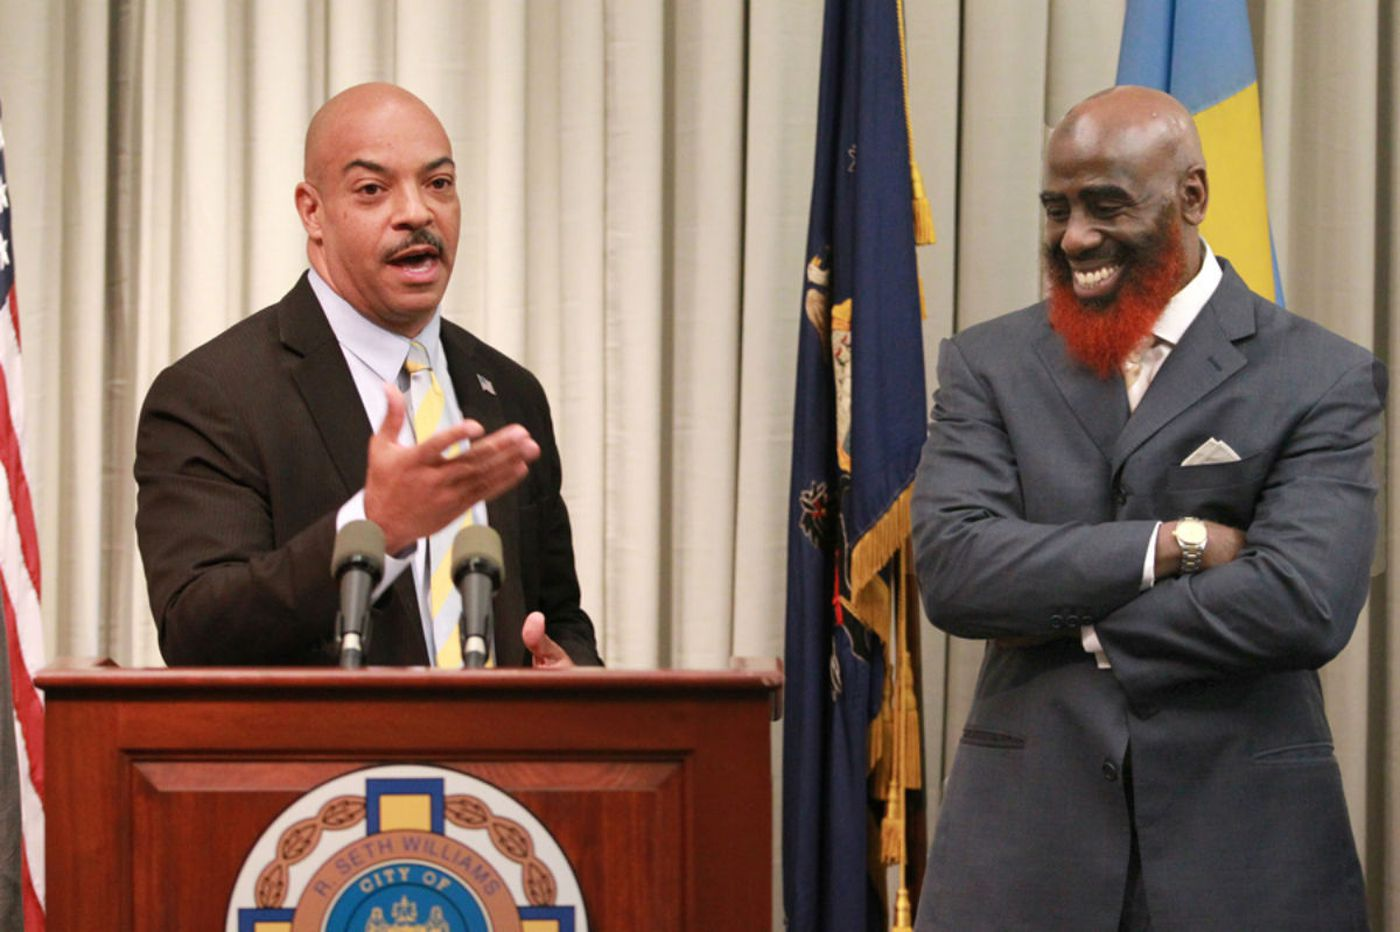 DA Williams' former first assistant seeking to fill his seat